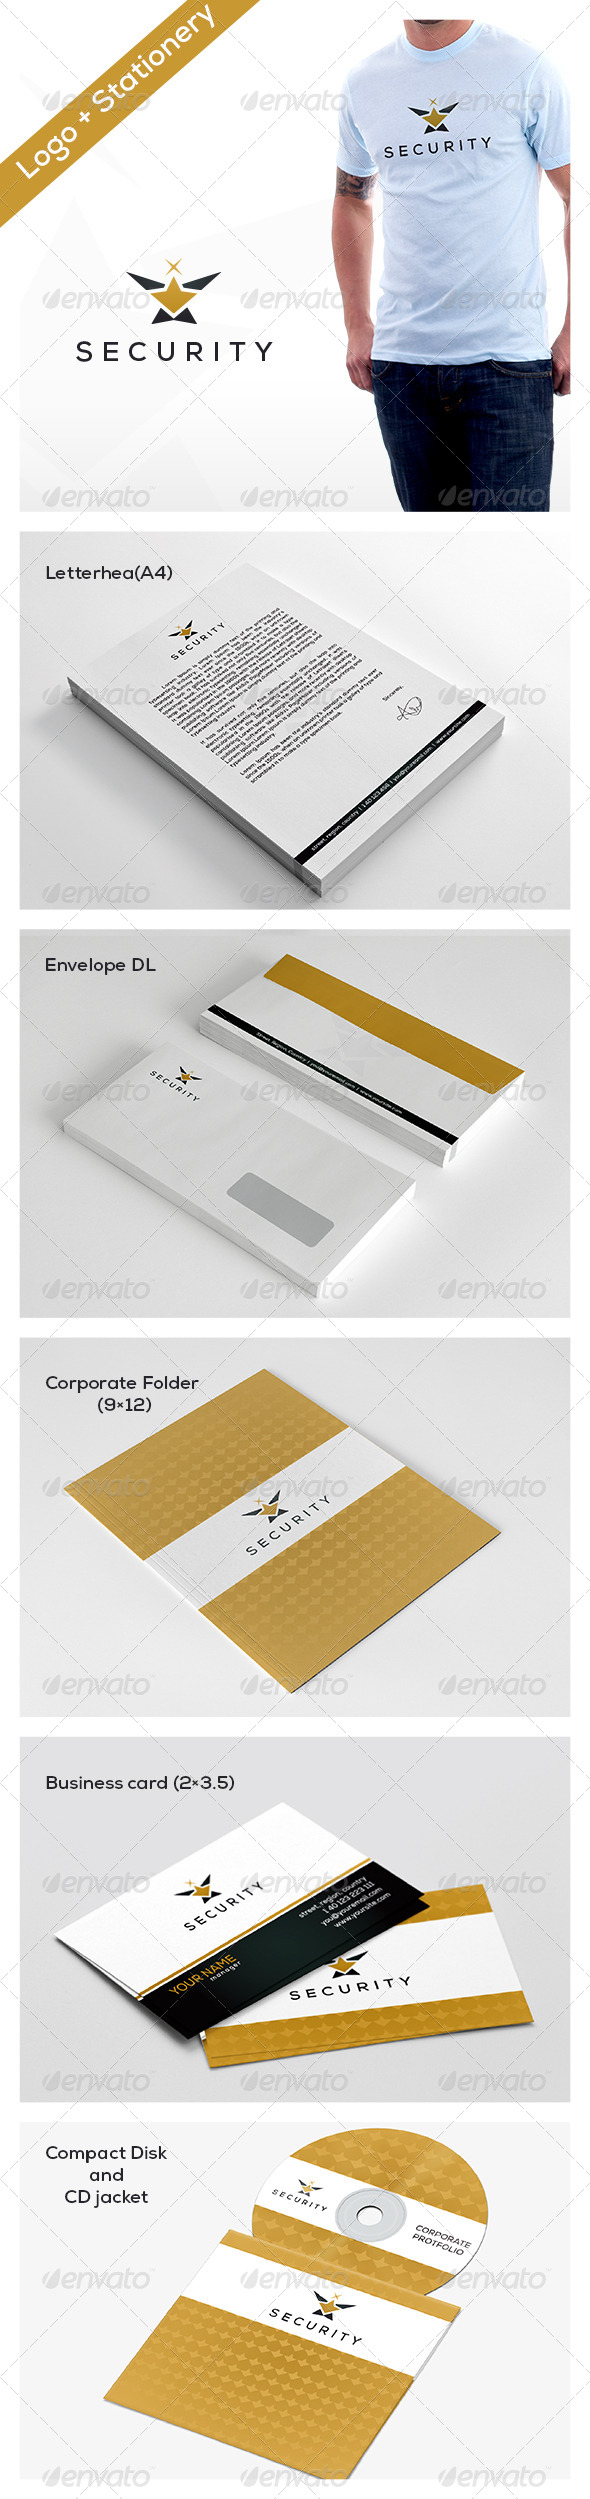 Security Stationery  - Stationery Print Templates